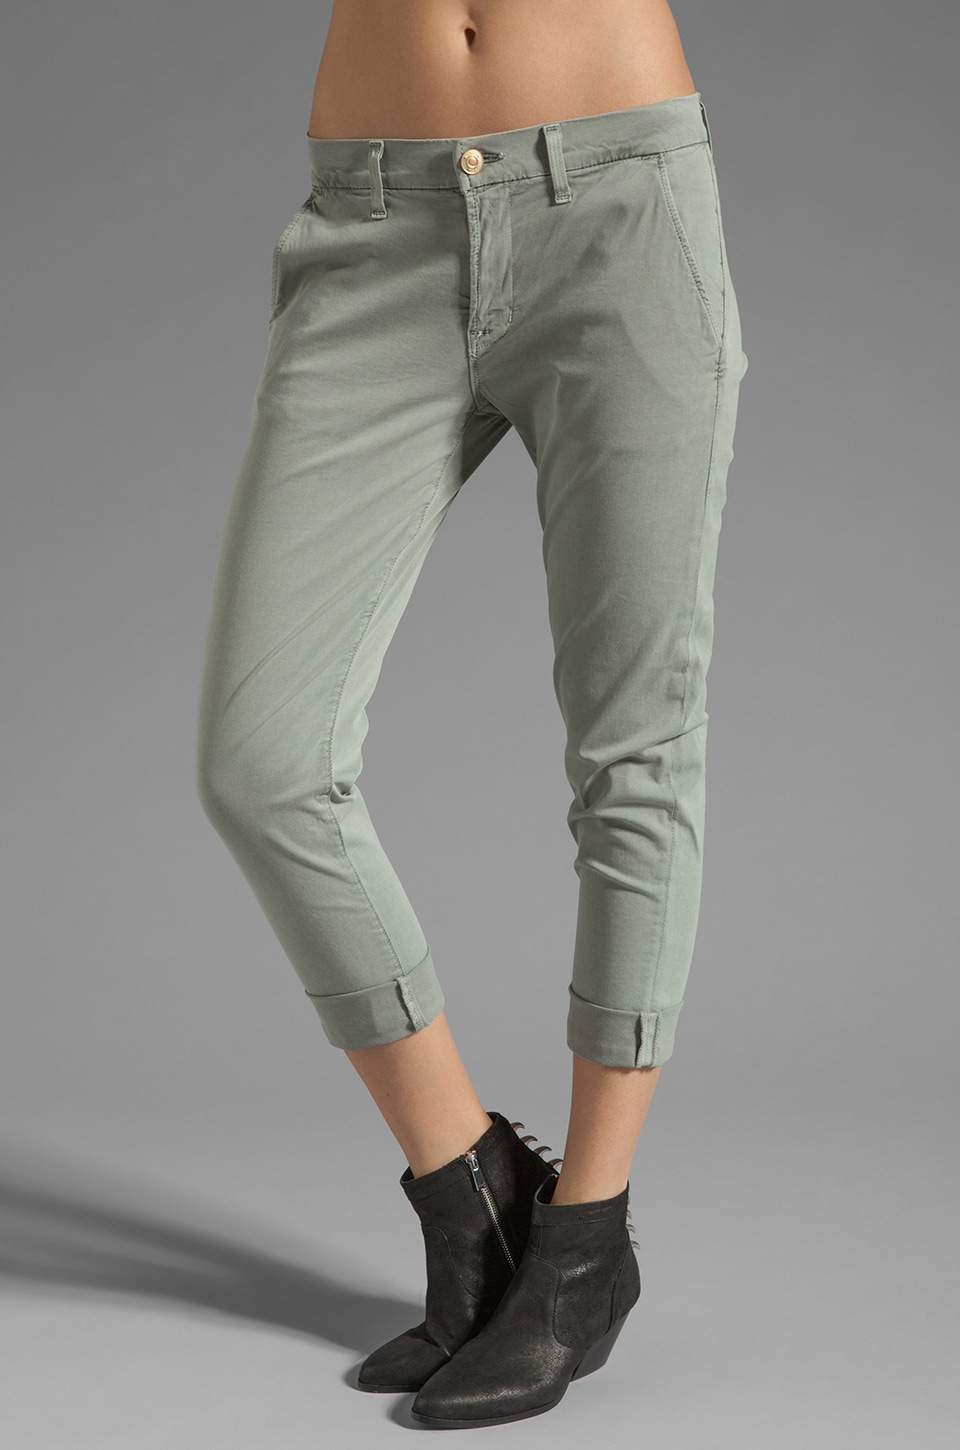 Hudson Jeans Jamie Slim Chino in Military Green